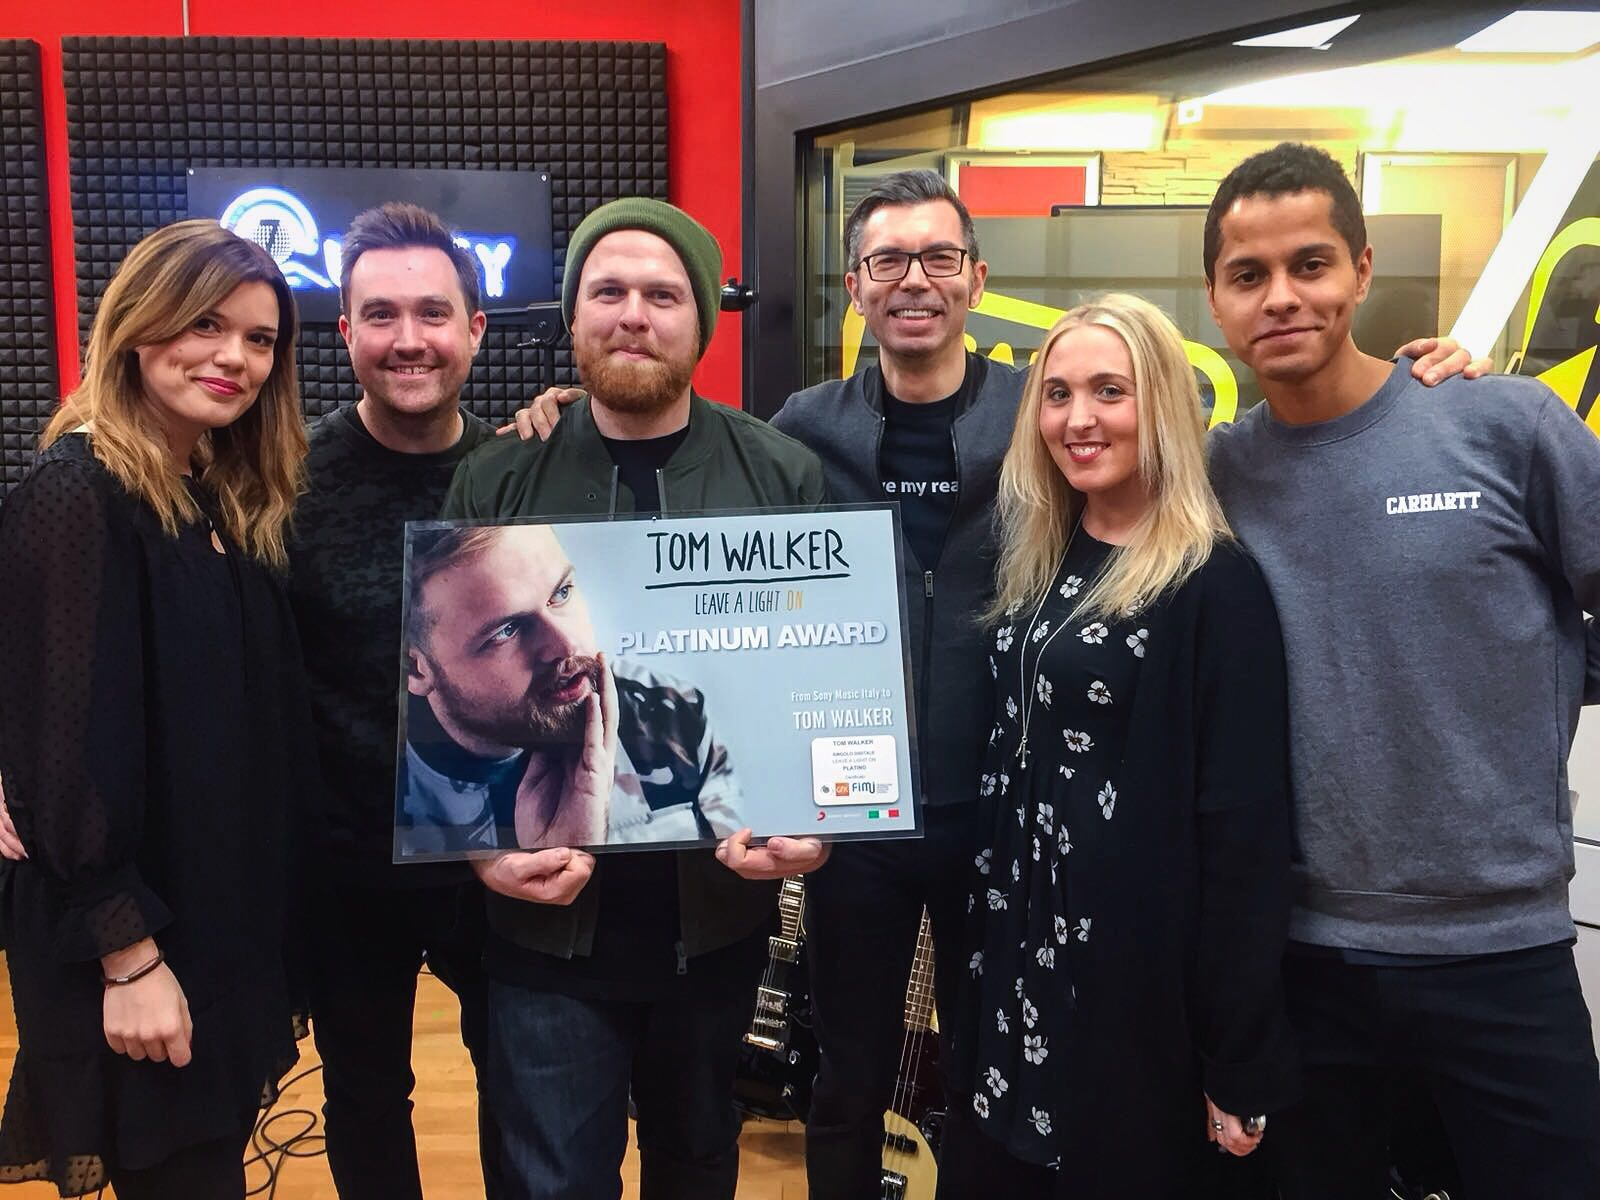 Tom Walker goes platinum in Italy!